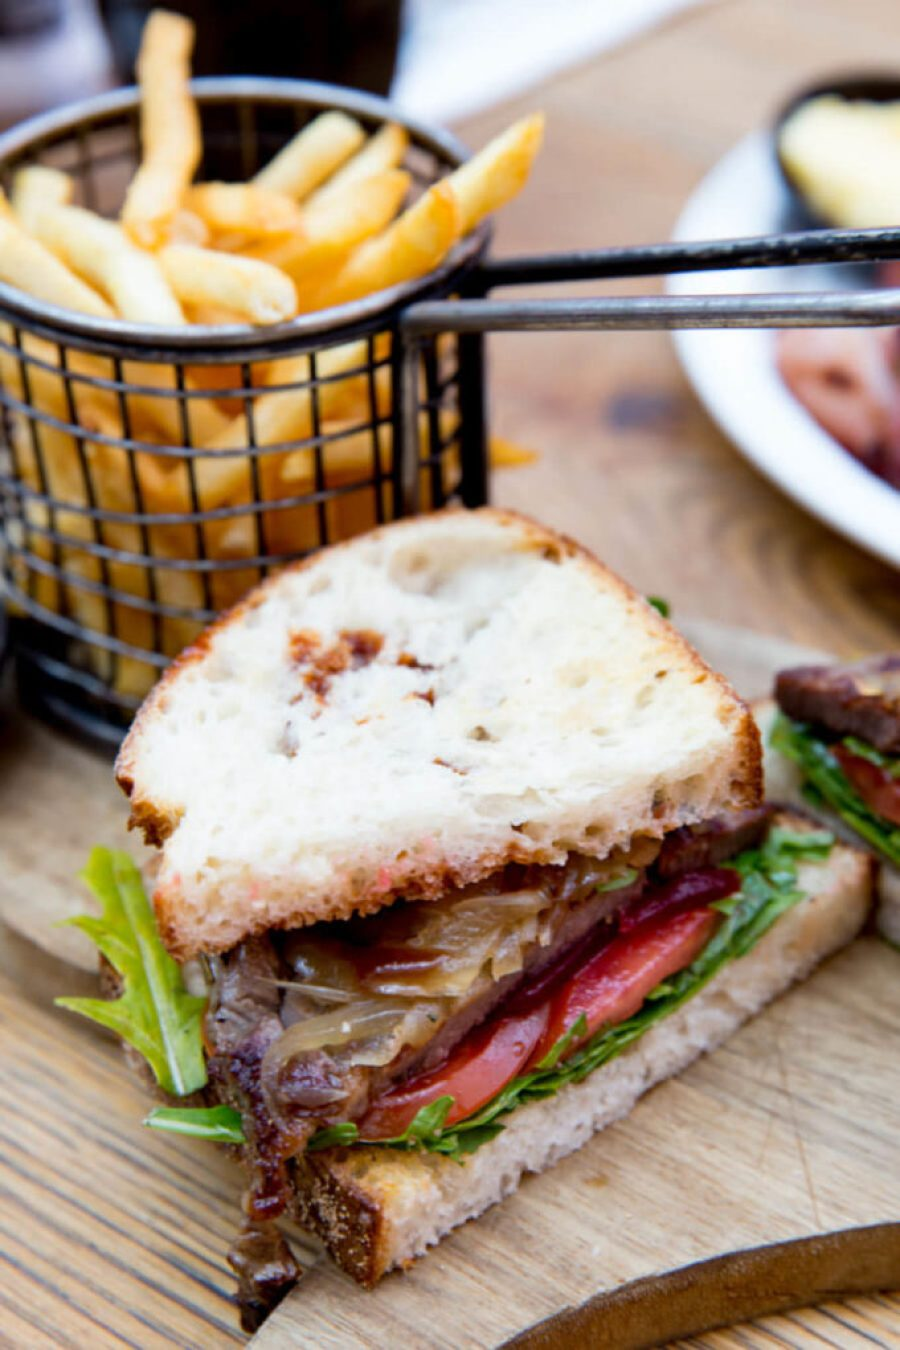 Dining guide to Sydney, The missing piece, macquaire park